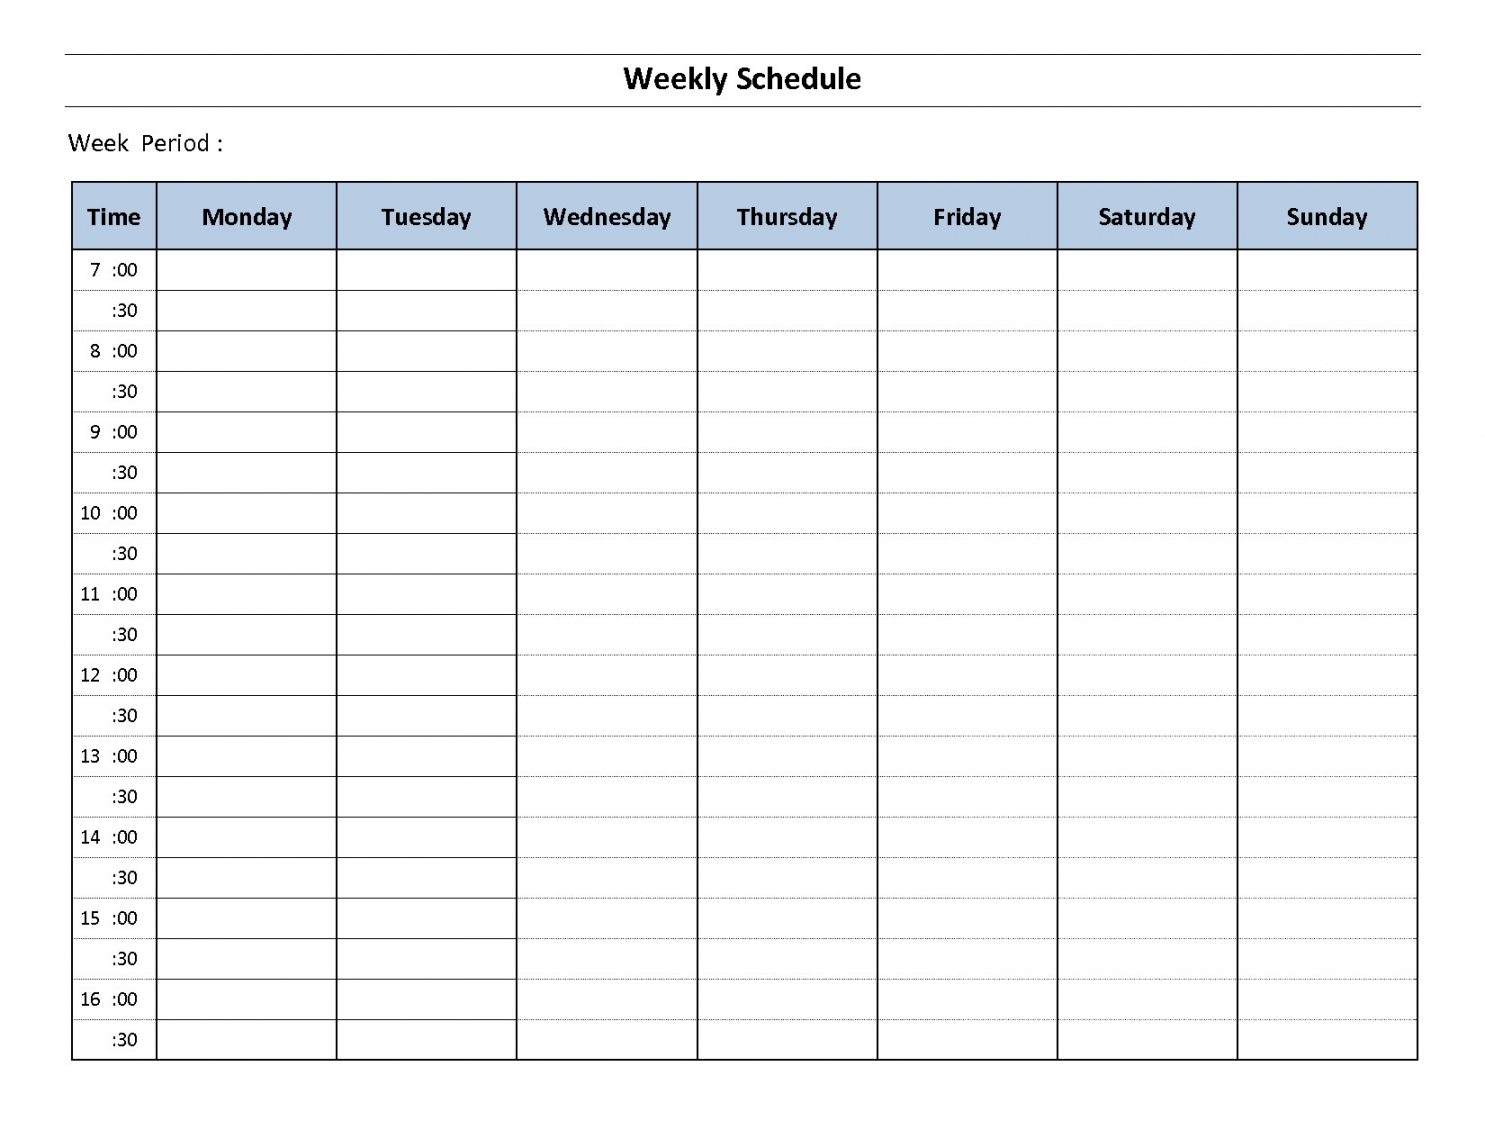 daily routine checklist template excel time schedule download daily routine checklist template examples